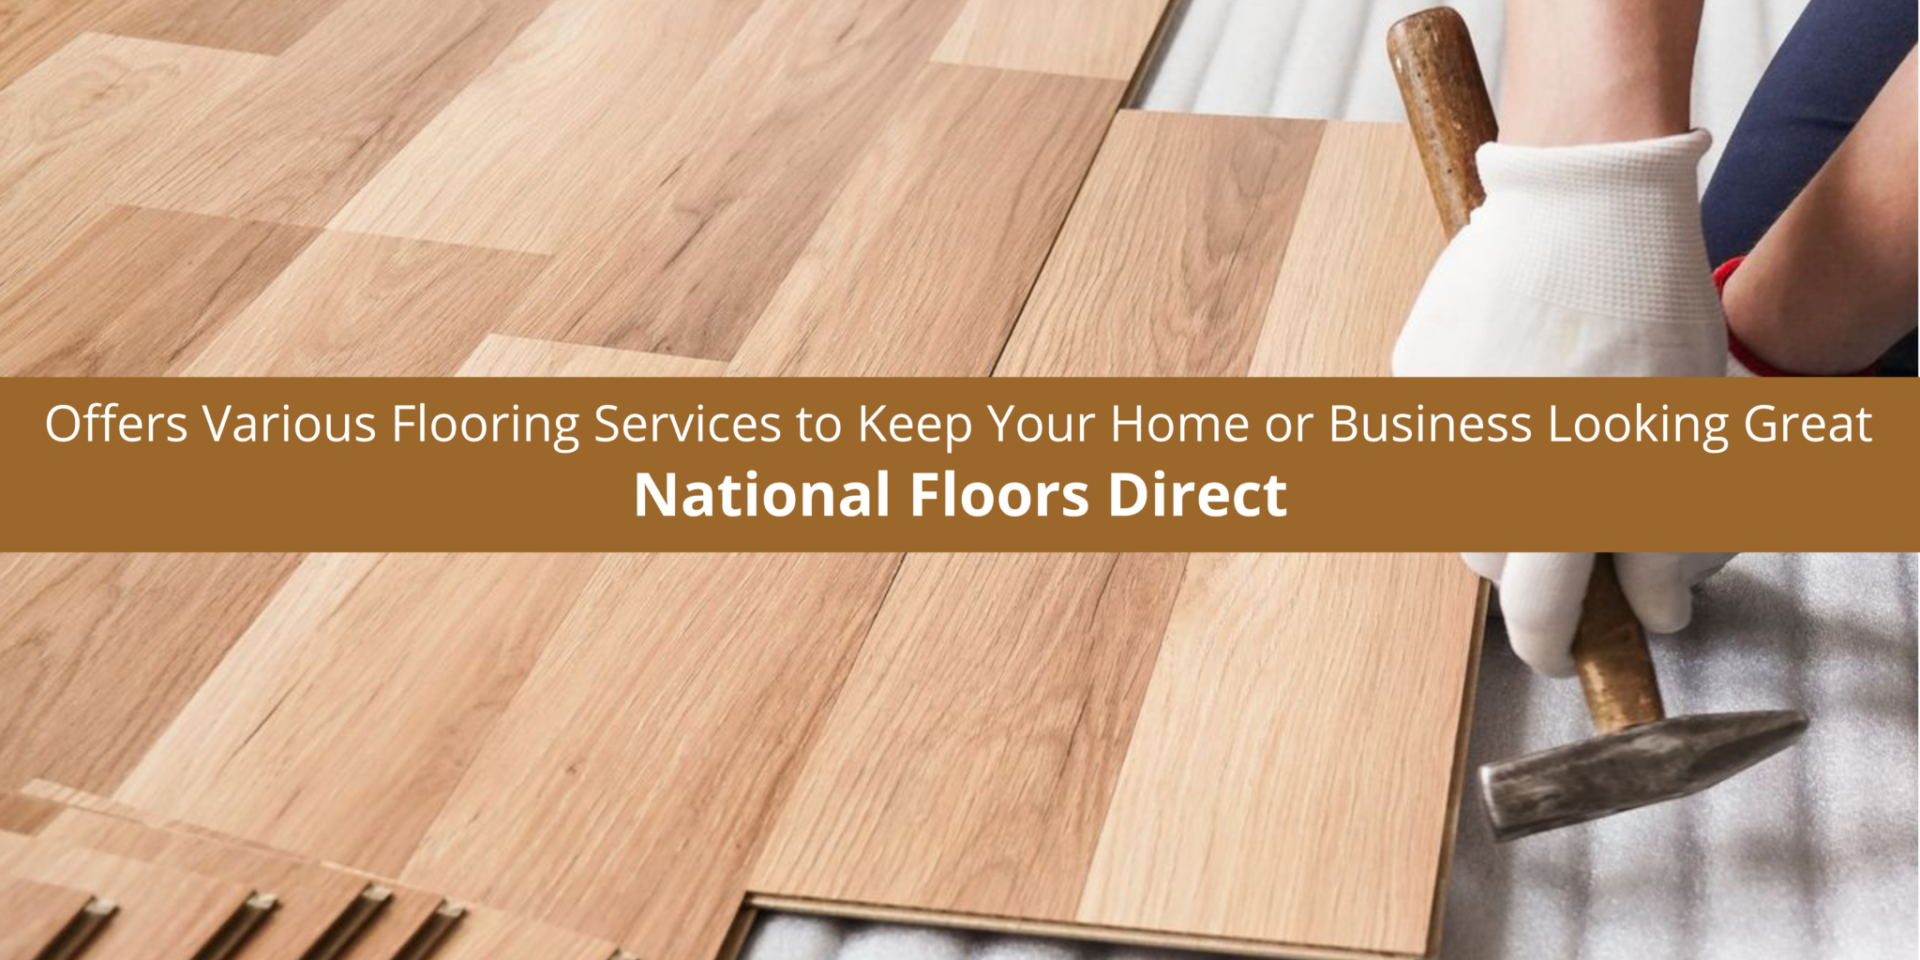 National Floors Direct Offers Various Flooring Services to Keep Your Home or Business Looking Great